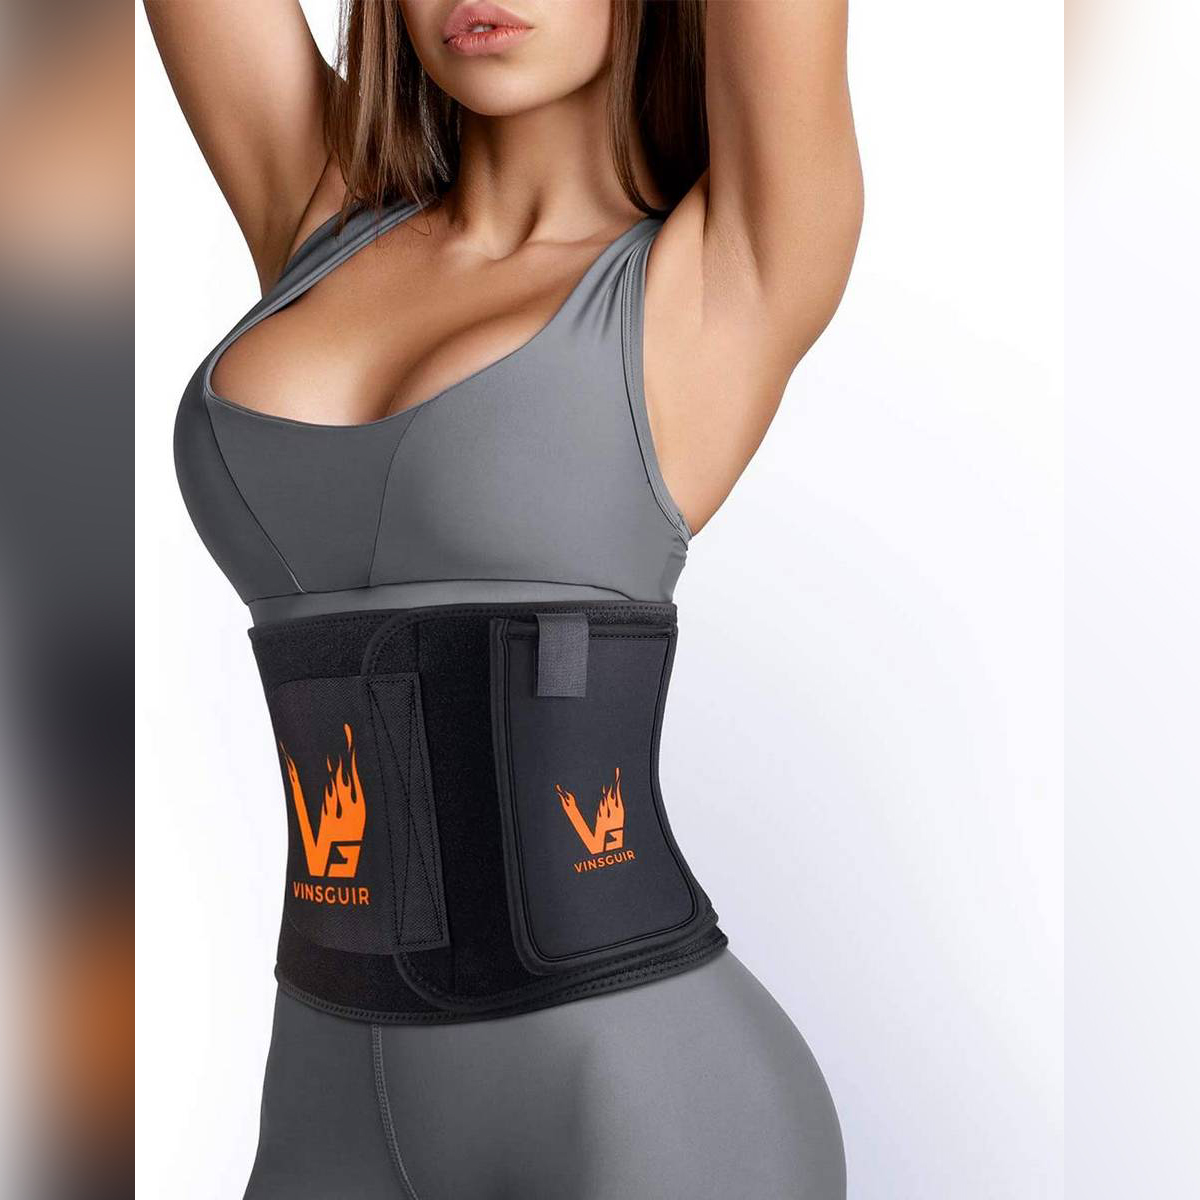 Waist Trainer for Weight Loss, Waist Trimmer Slimming Body Shaper Belt, Low Back and Lumbar Support, Belly Fat Burner, Compression Band for Weight Loss Workout Fitness for Men and Women